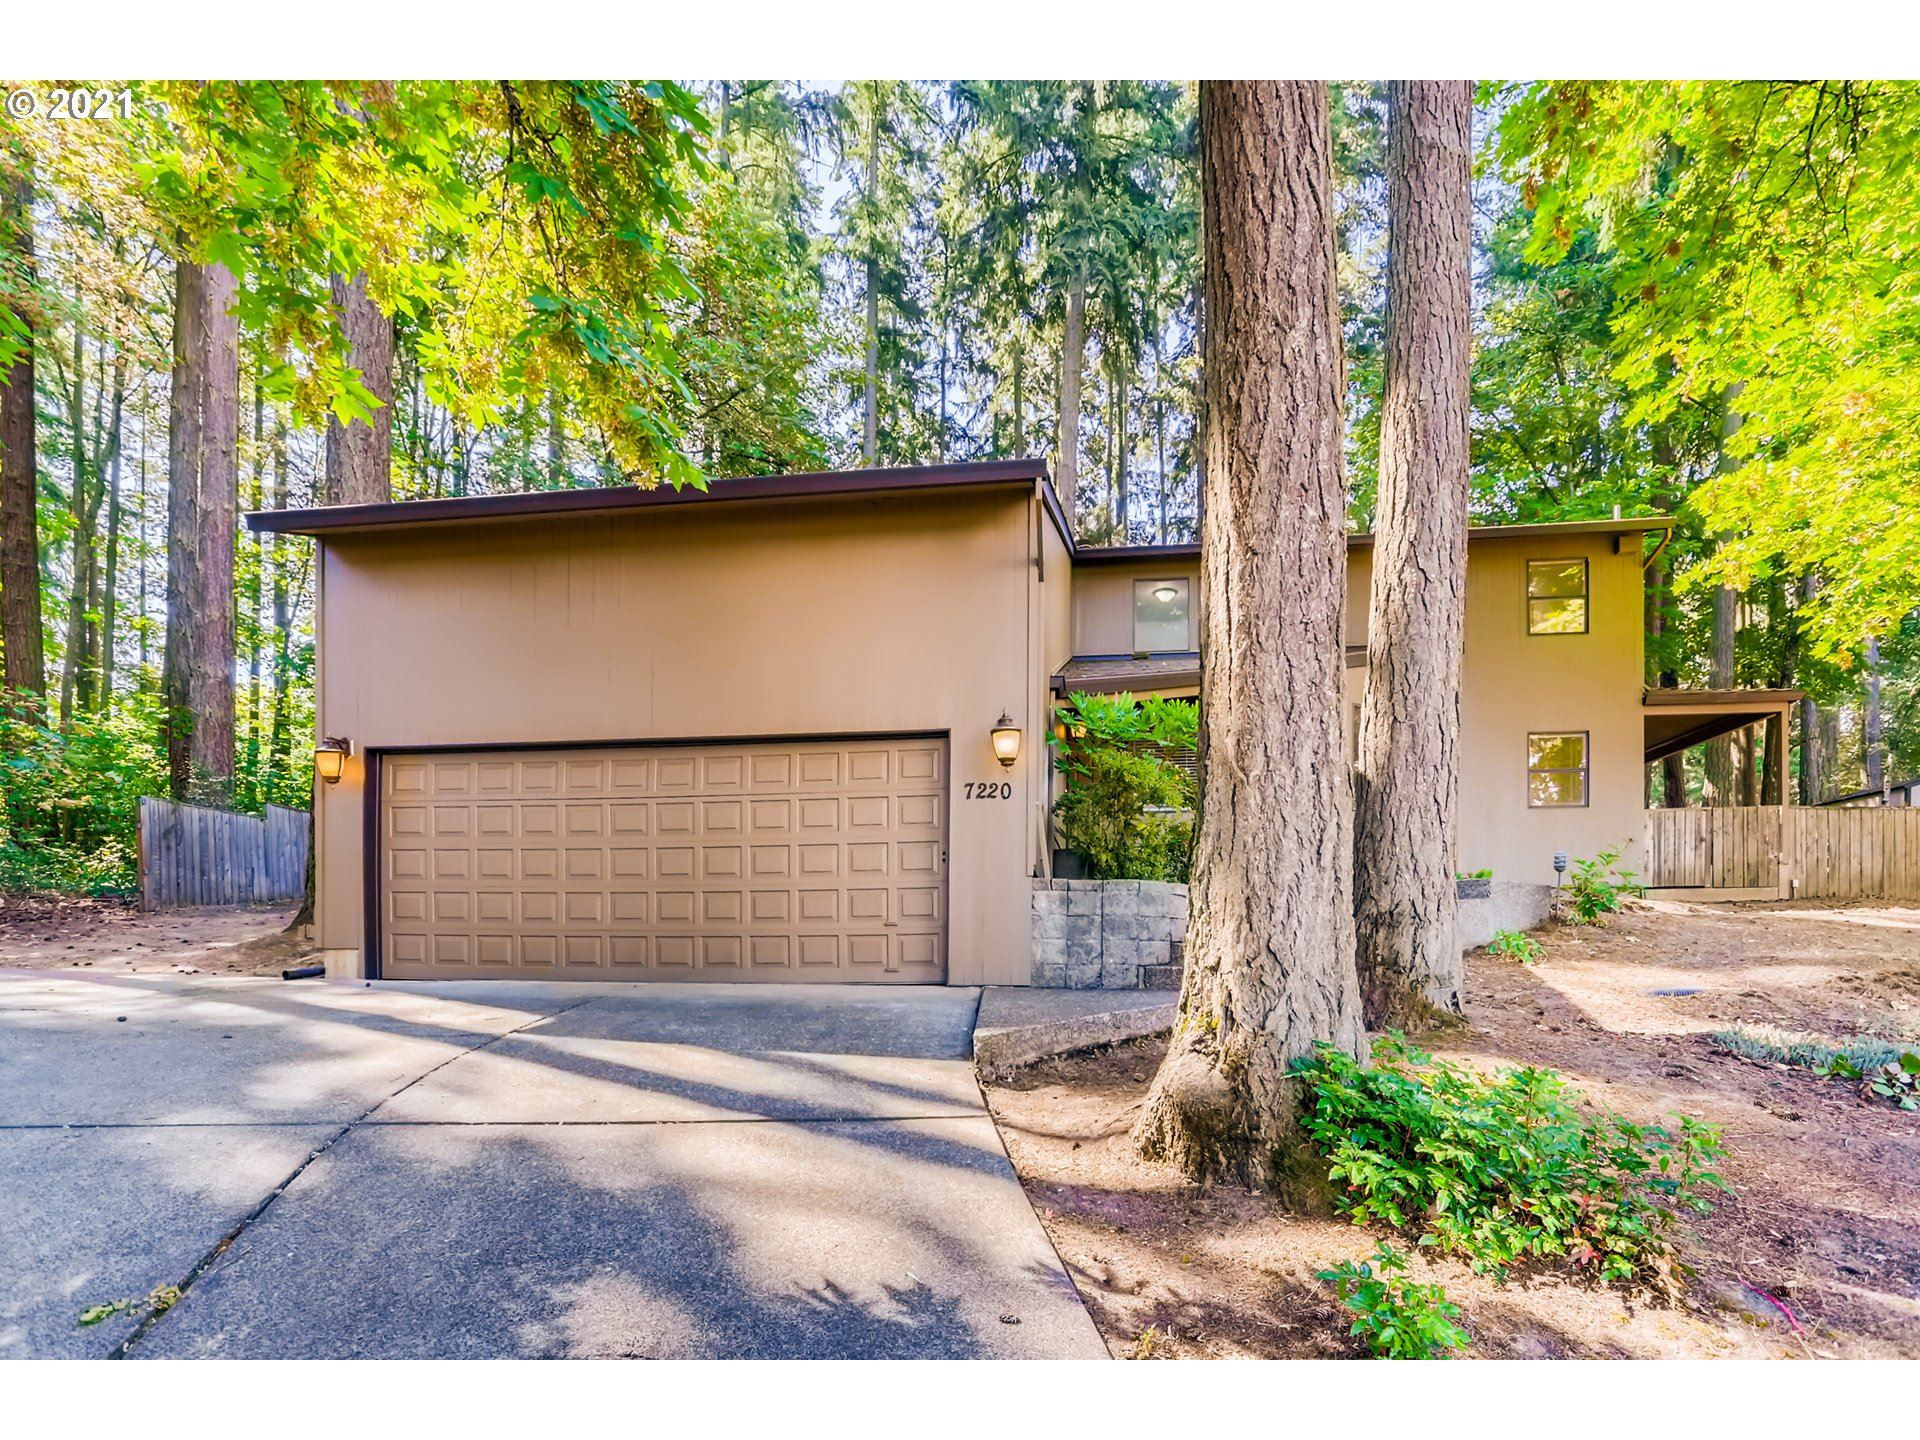 7220 SW 182ND AVE, Aloha, OR 97007 - MLS#: 21697684